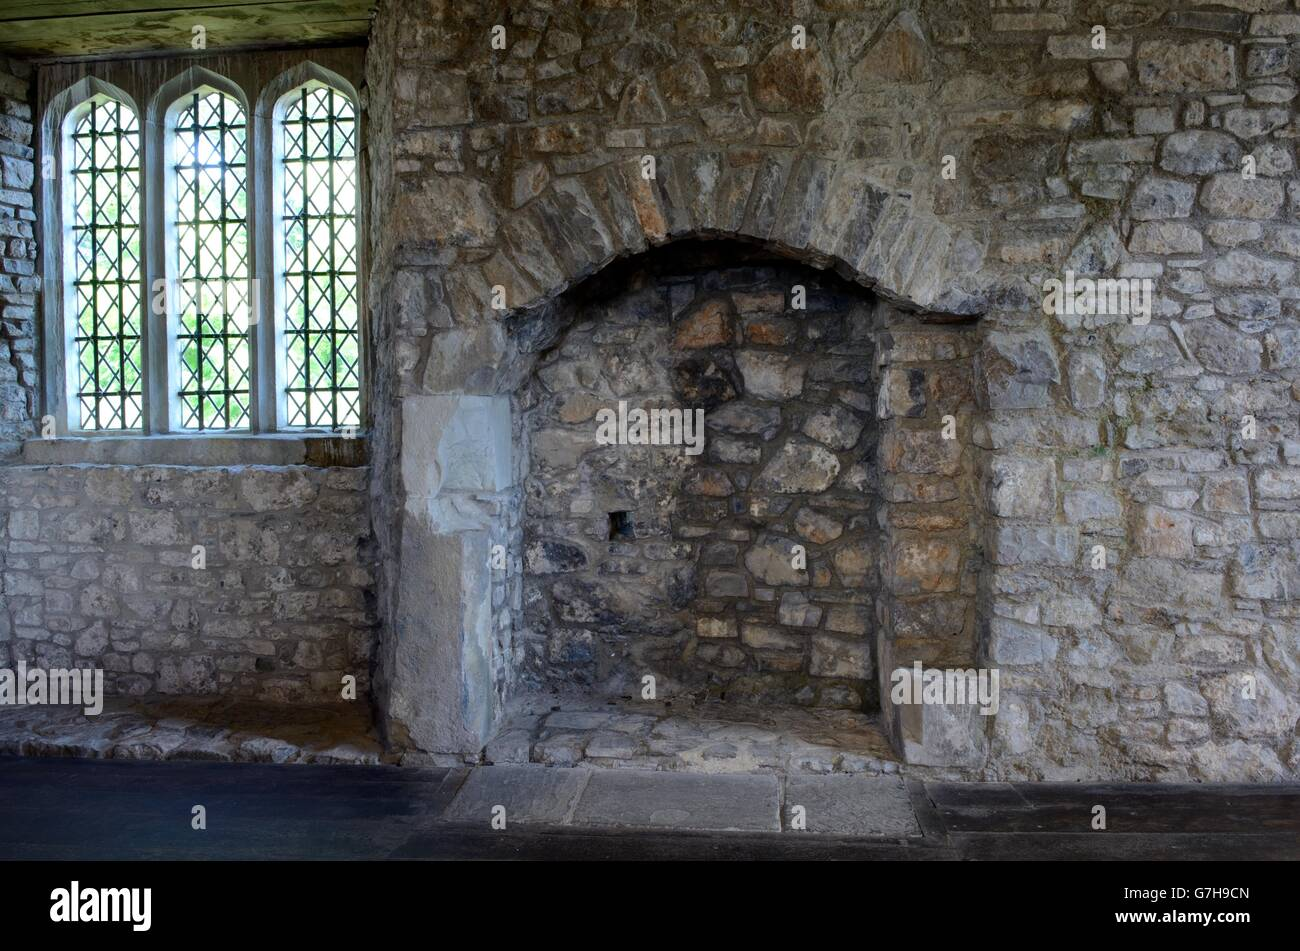 Old stone fireplace and window inside Oxwich Castle Gower Peninsula Wales